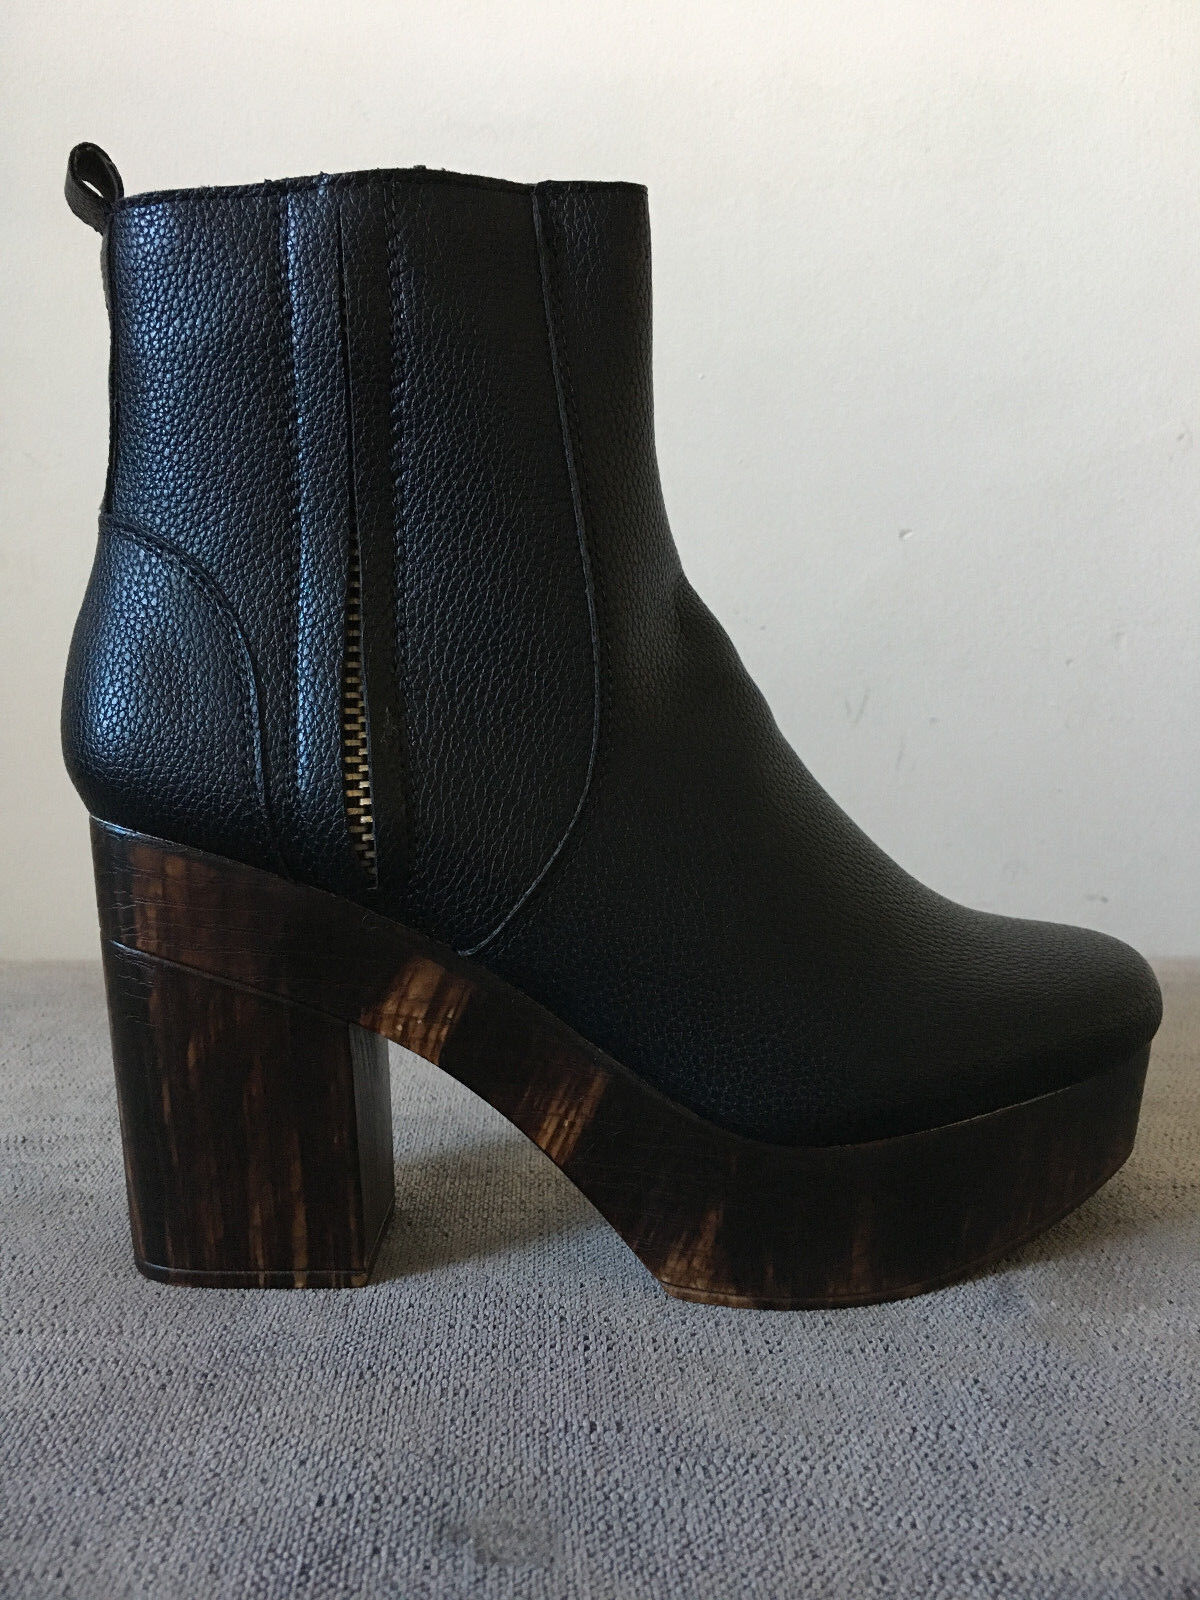 *** Wooden Block Platform Zip up Ankle Boot Black Low Prices BNIB ***